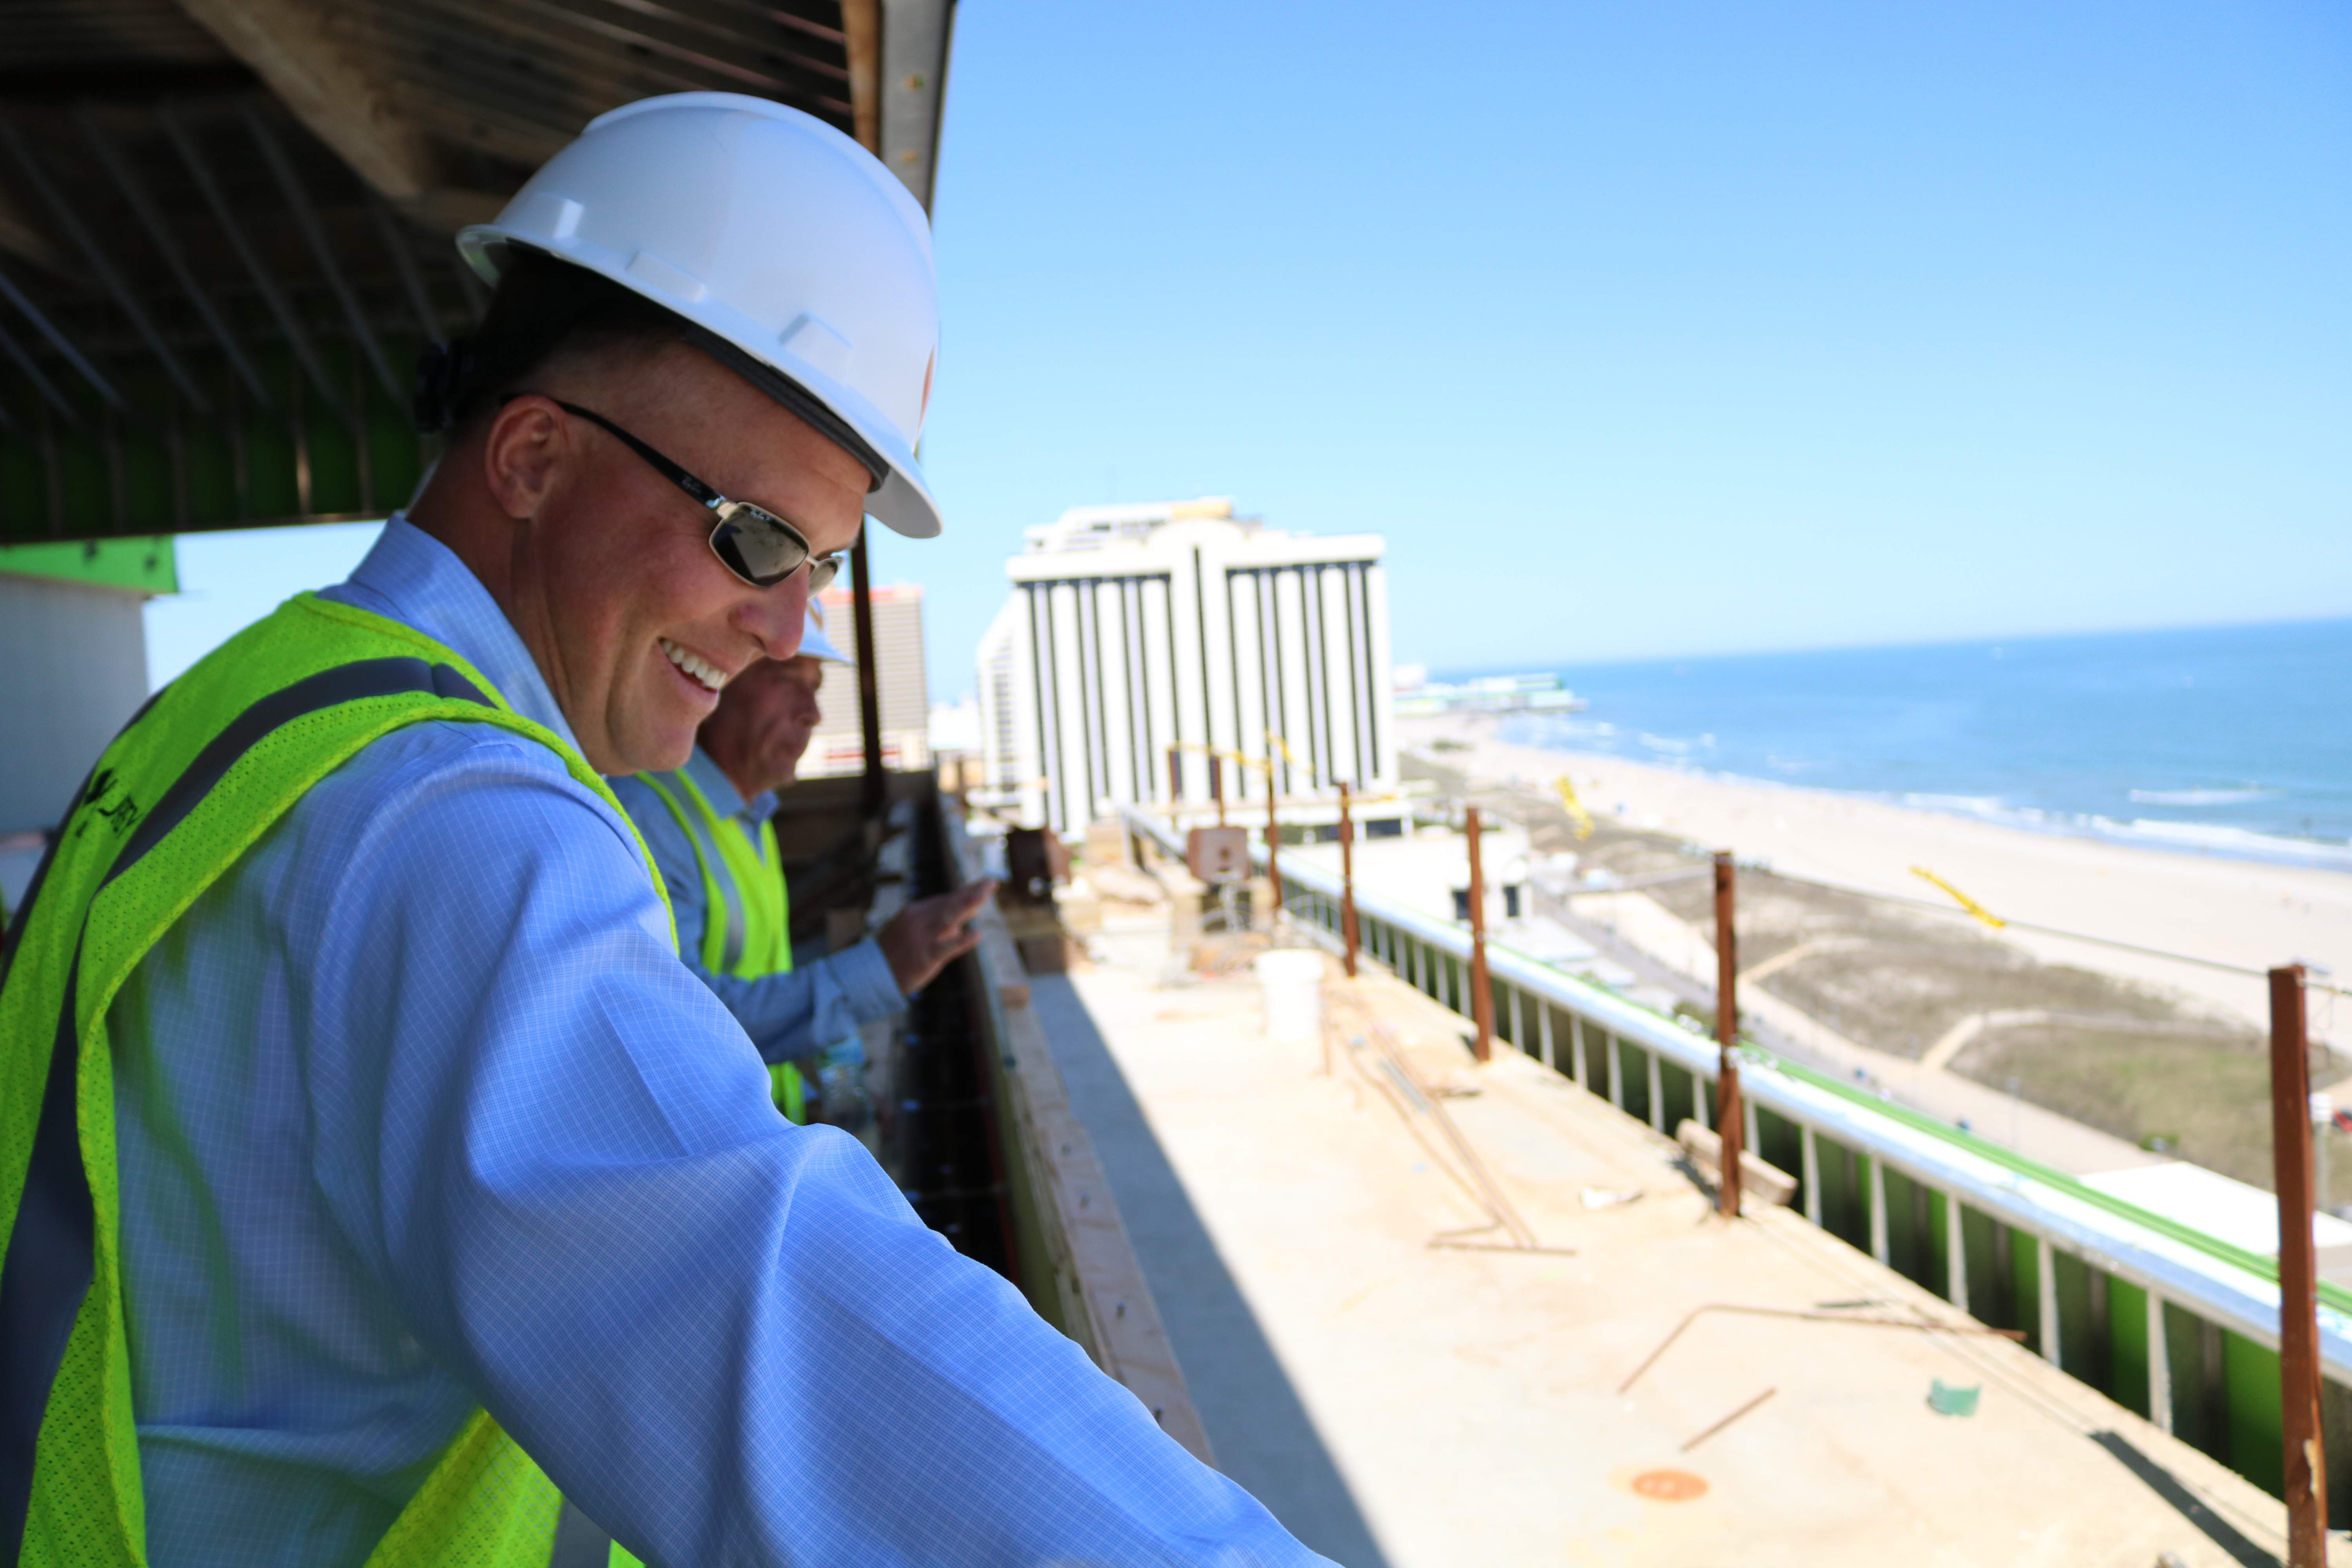 South Jersey Gas President Dave Robbins enjoys the view from the developing top floor of the new South Jersey Gas headquarters.